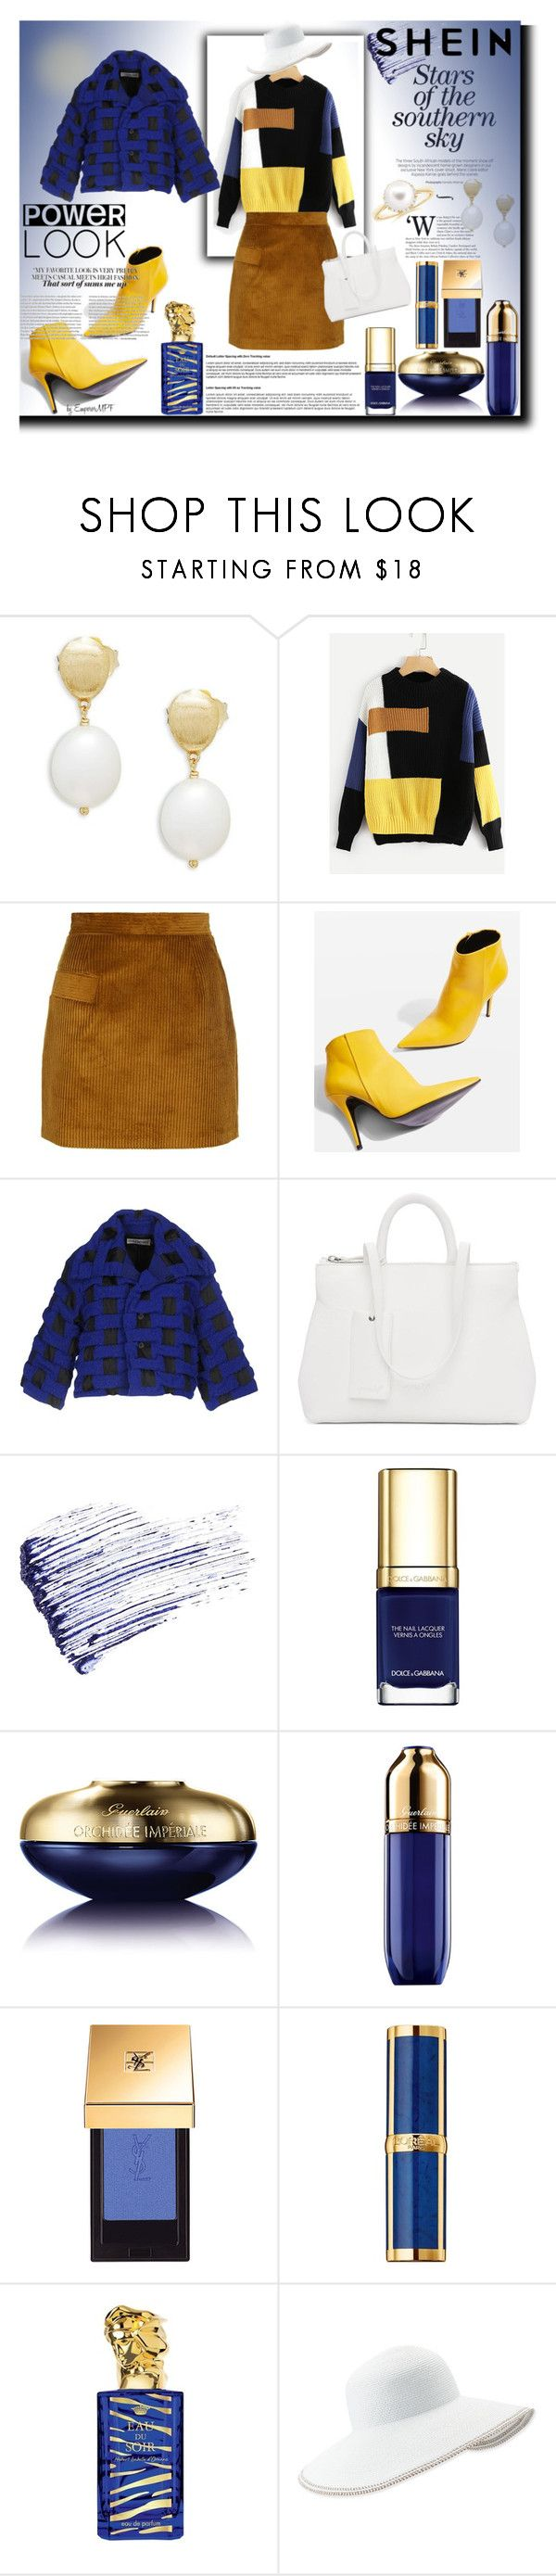 """""""SHEIN Stars of the Southern Sky"""" by emperormpf ❤ liked on Polyvore featuring Marco Bicego, Sandro, Topshop, Issey Miyake, Marsèll, Marc Jacobs, Dolce&Gabbana, Guerlain, Balmain and Sisley"""